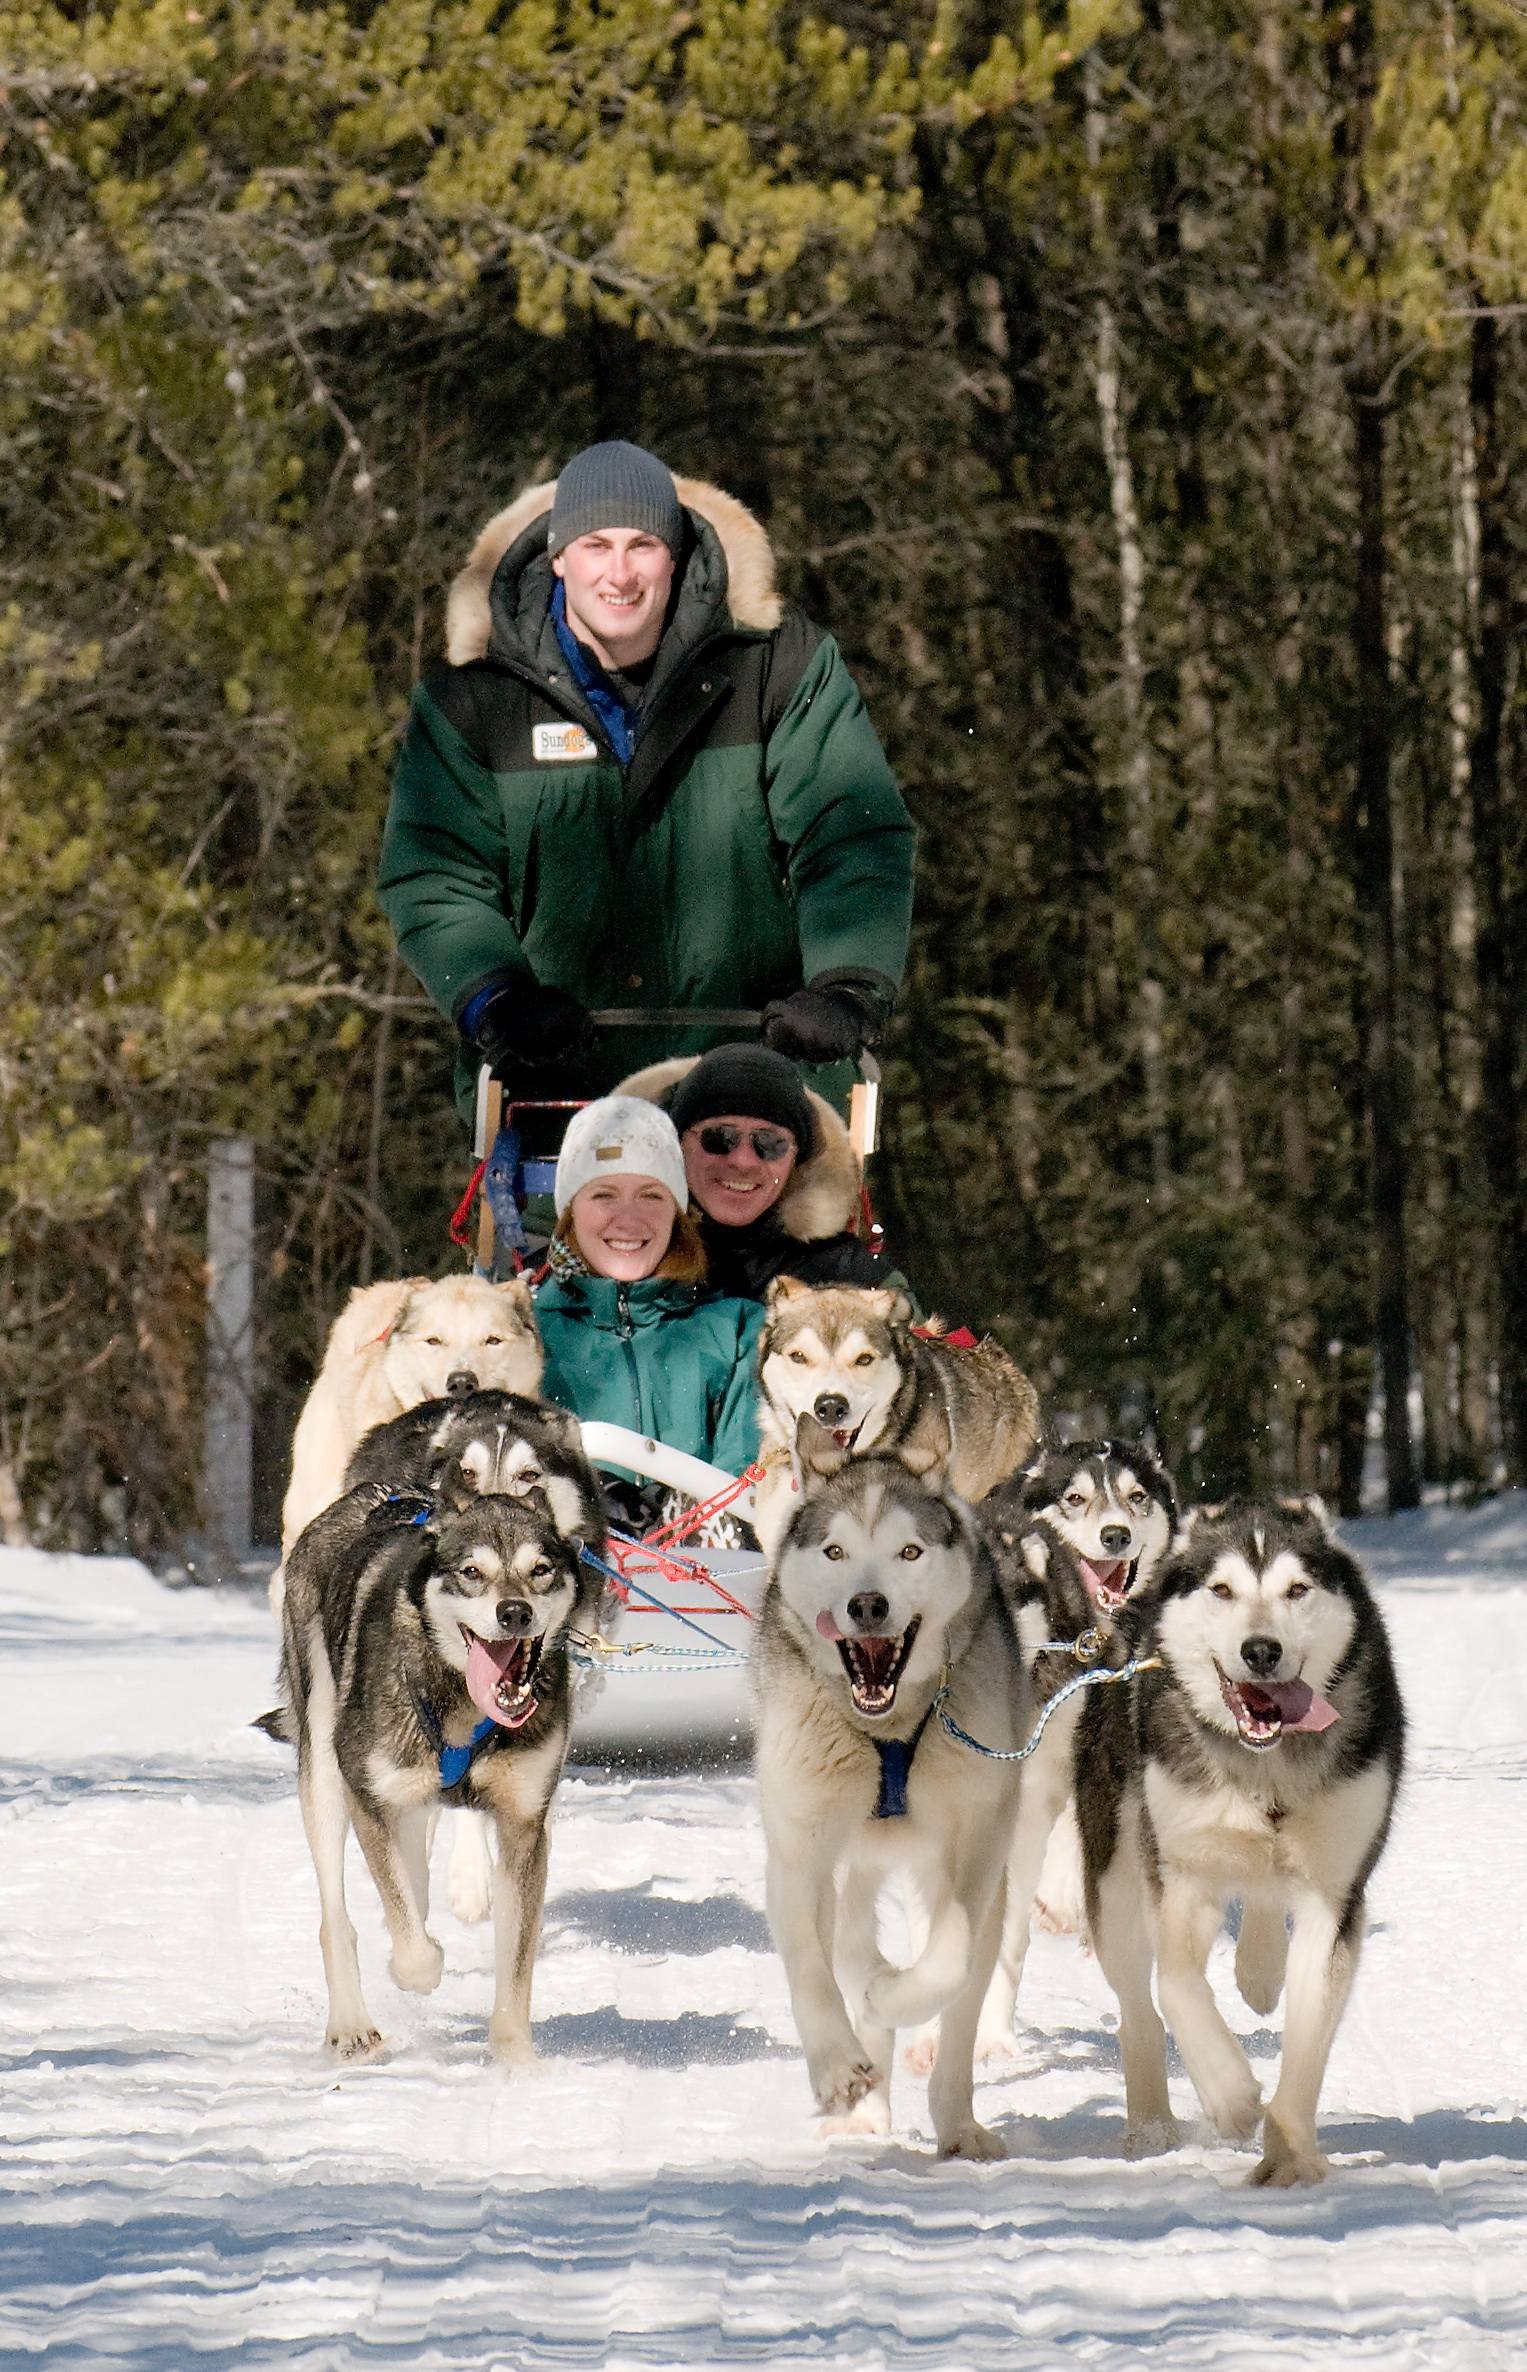 Winter Camping with Sled Dogs